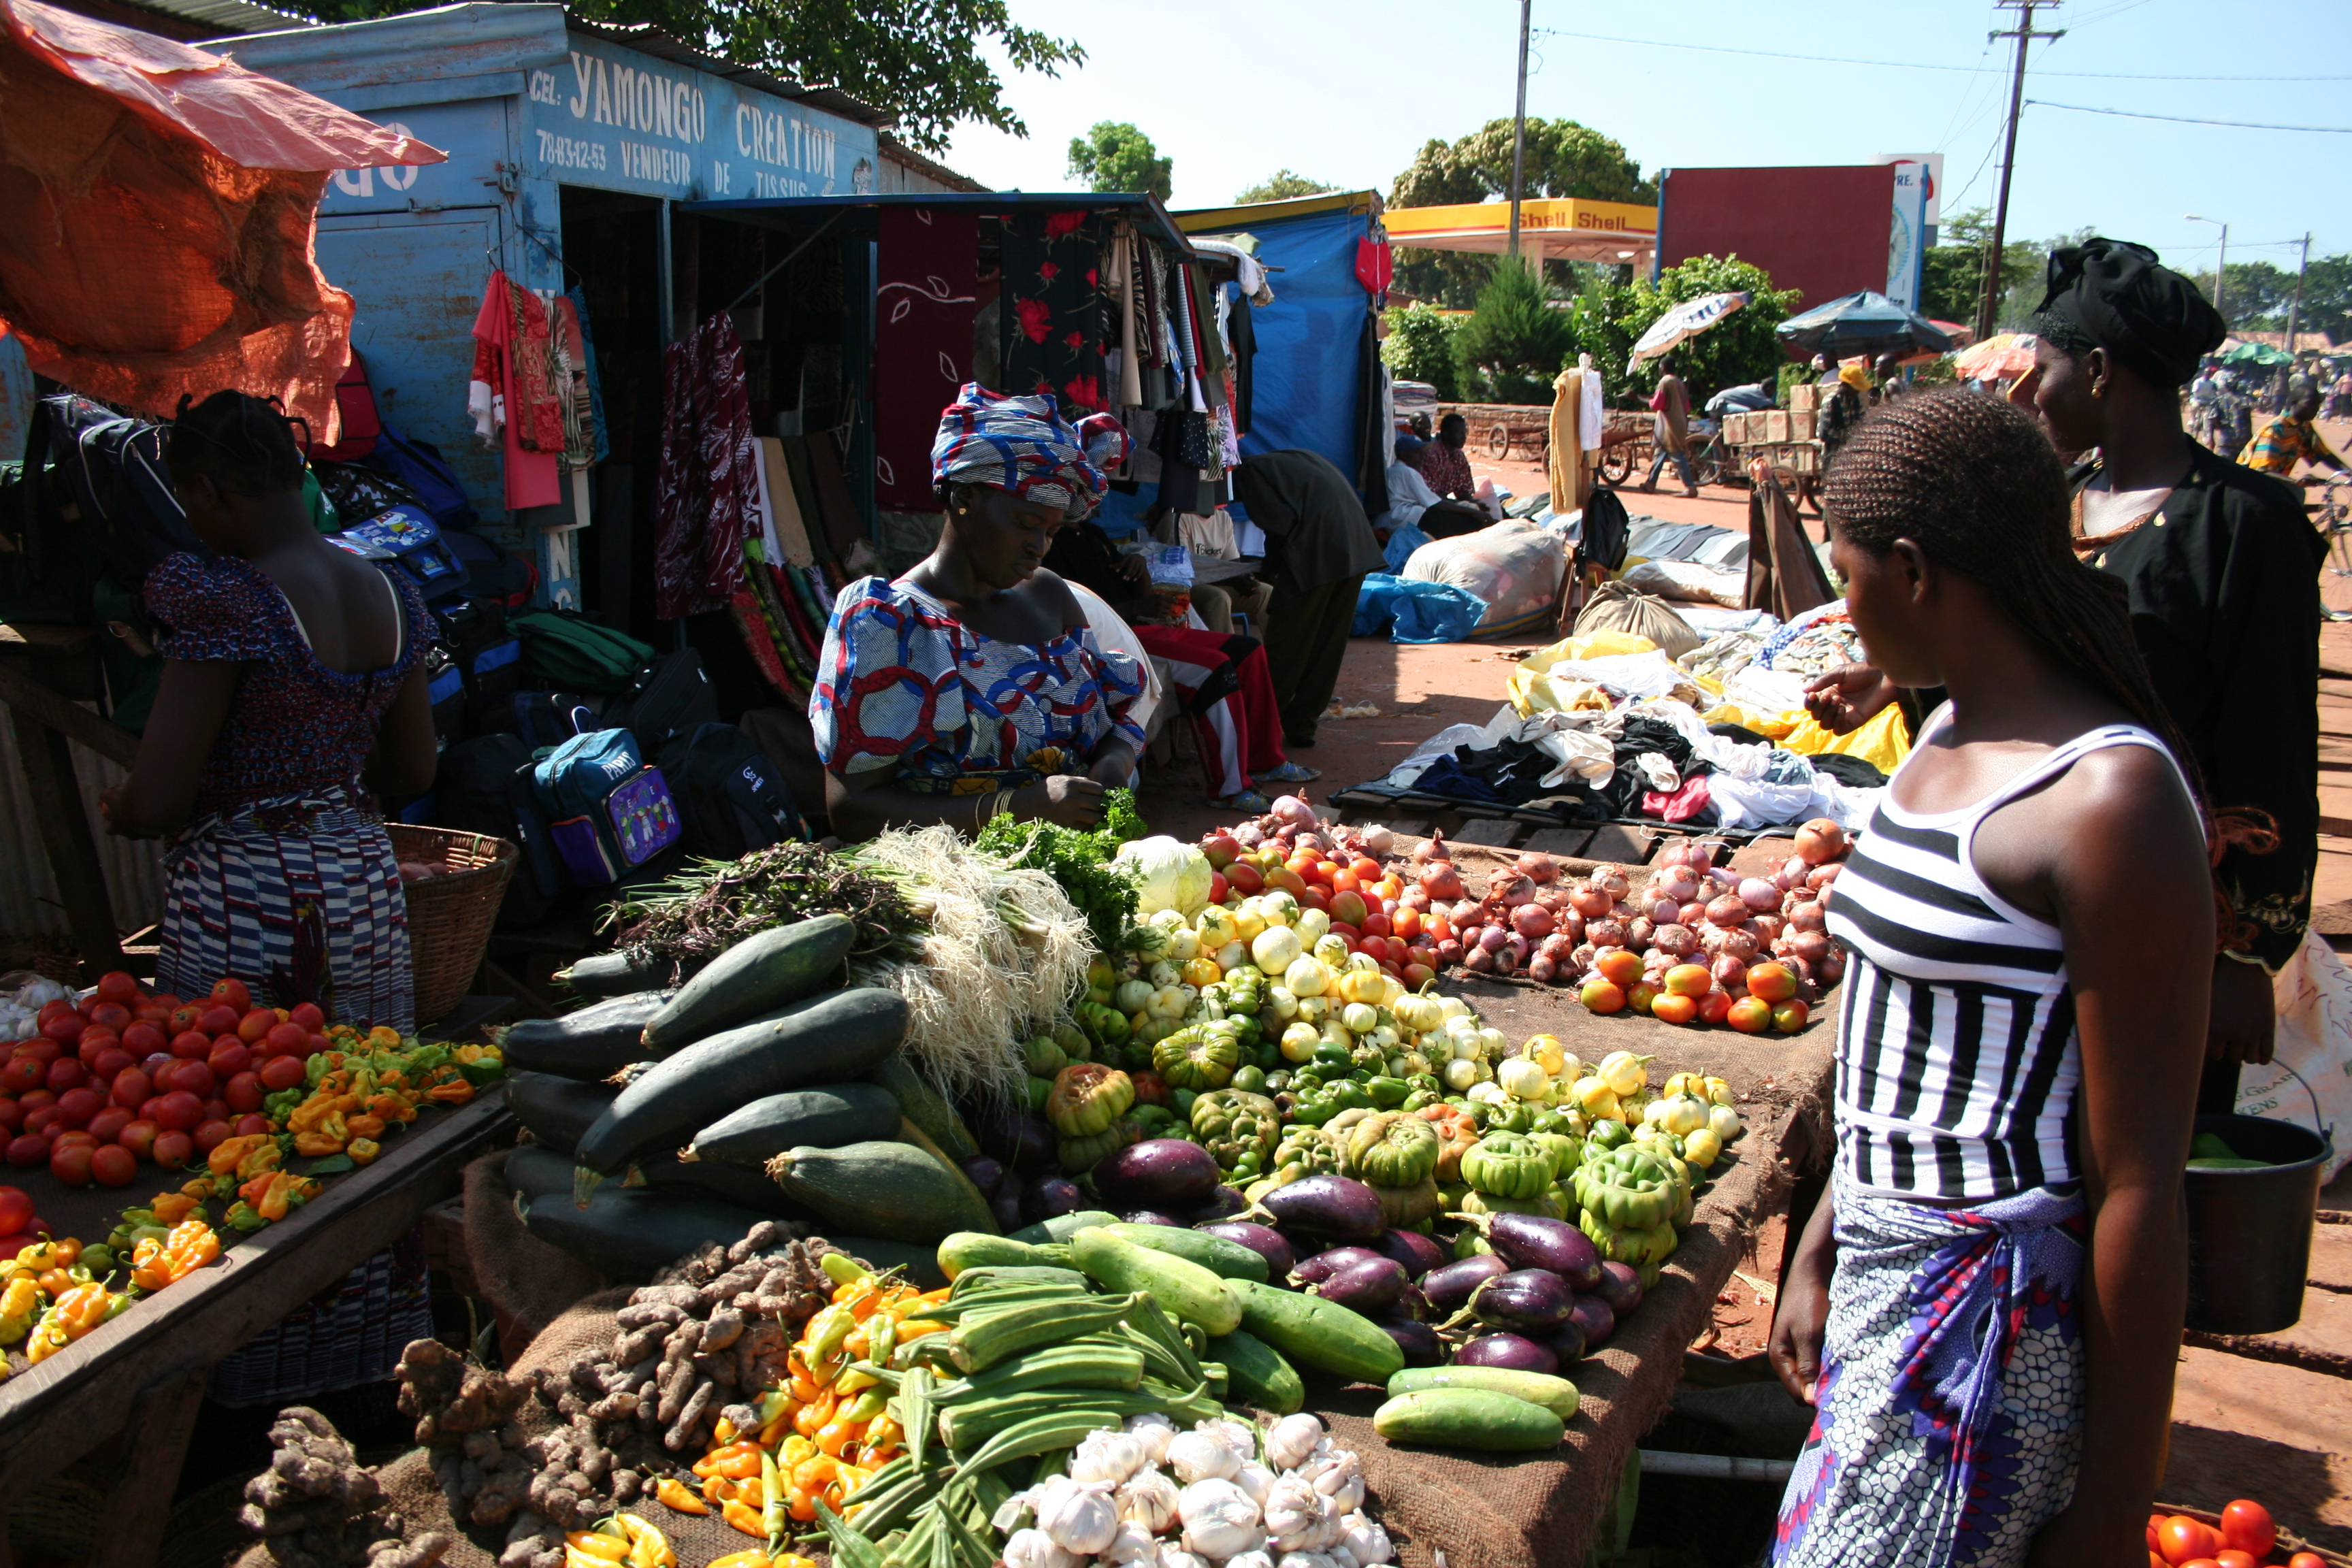 Attending a Farmers Market at the end of the day enhances your chances of bargains